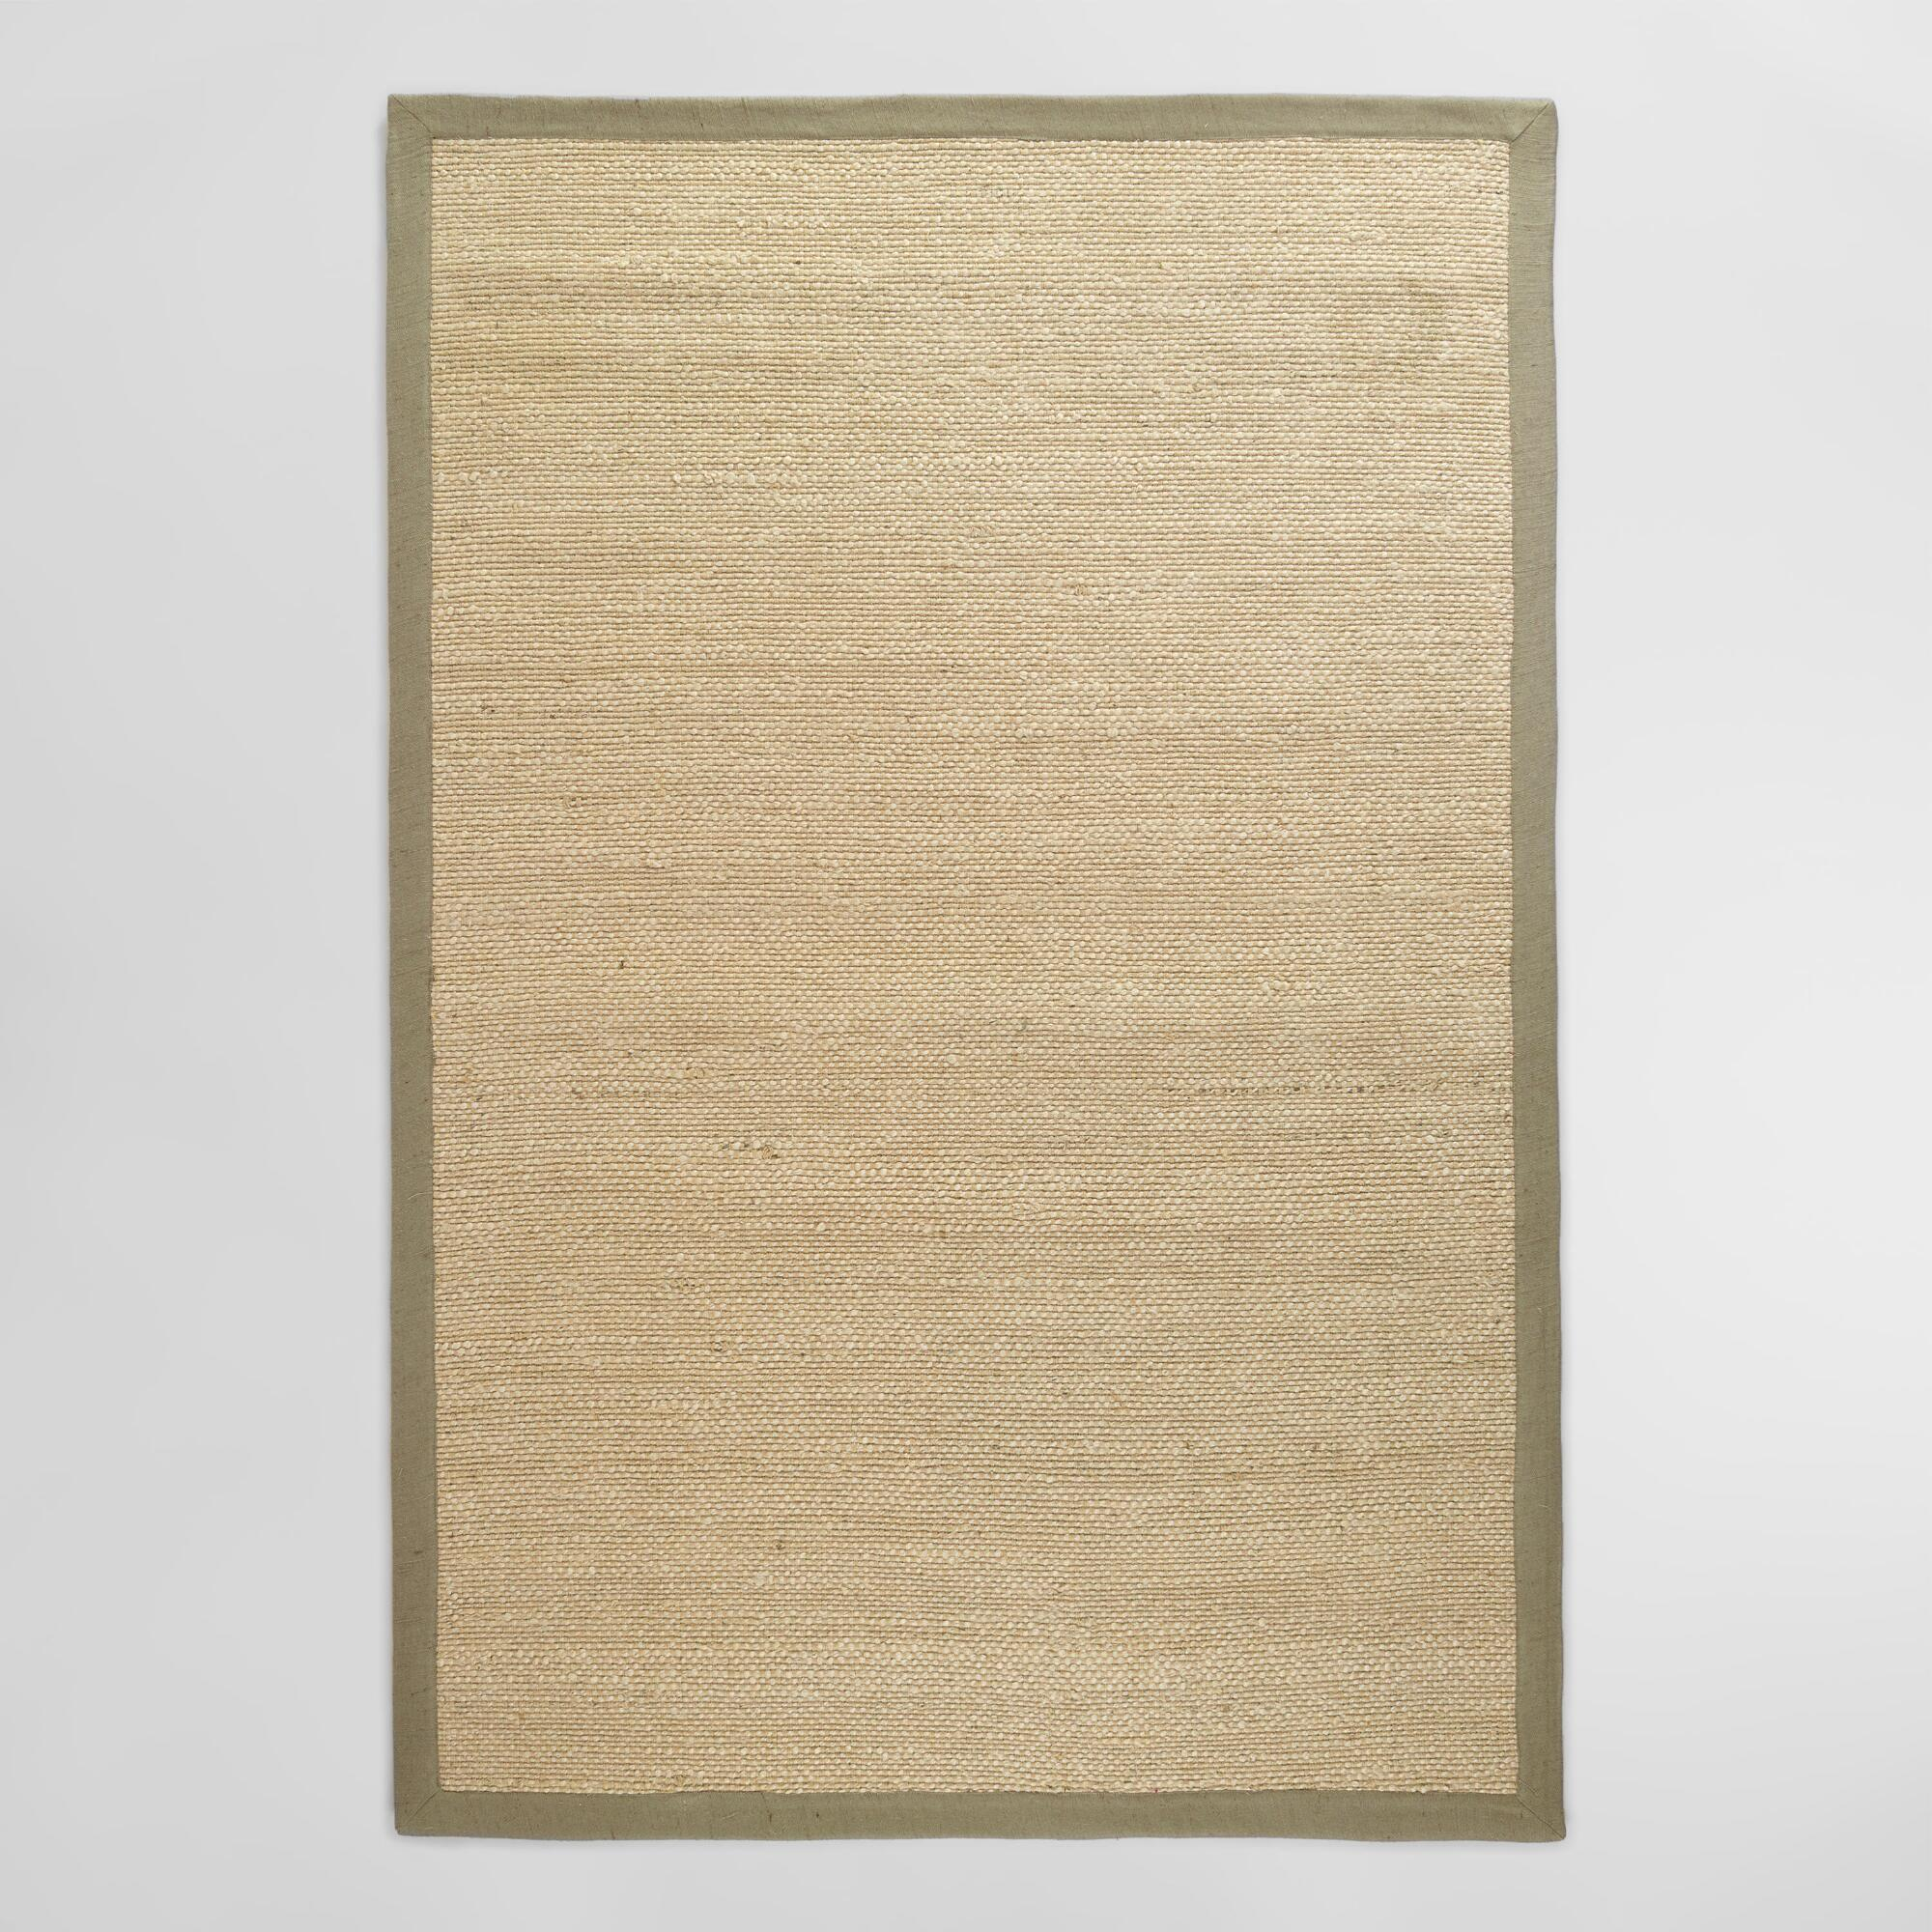 Gray Bordered Chunky Woven Jute Rug: Gray/Natural - 6' x 9' by World Market 6Ftx9Ft